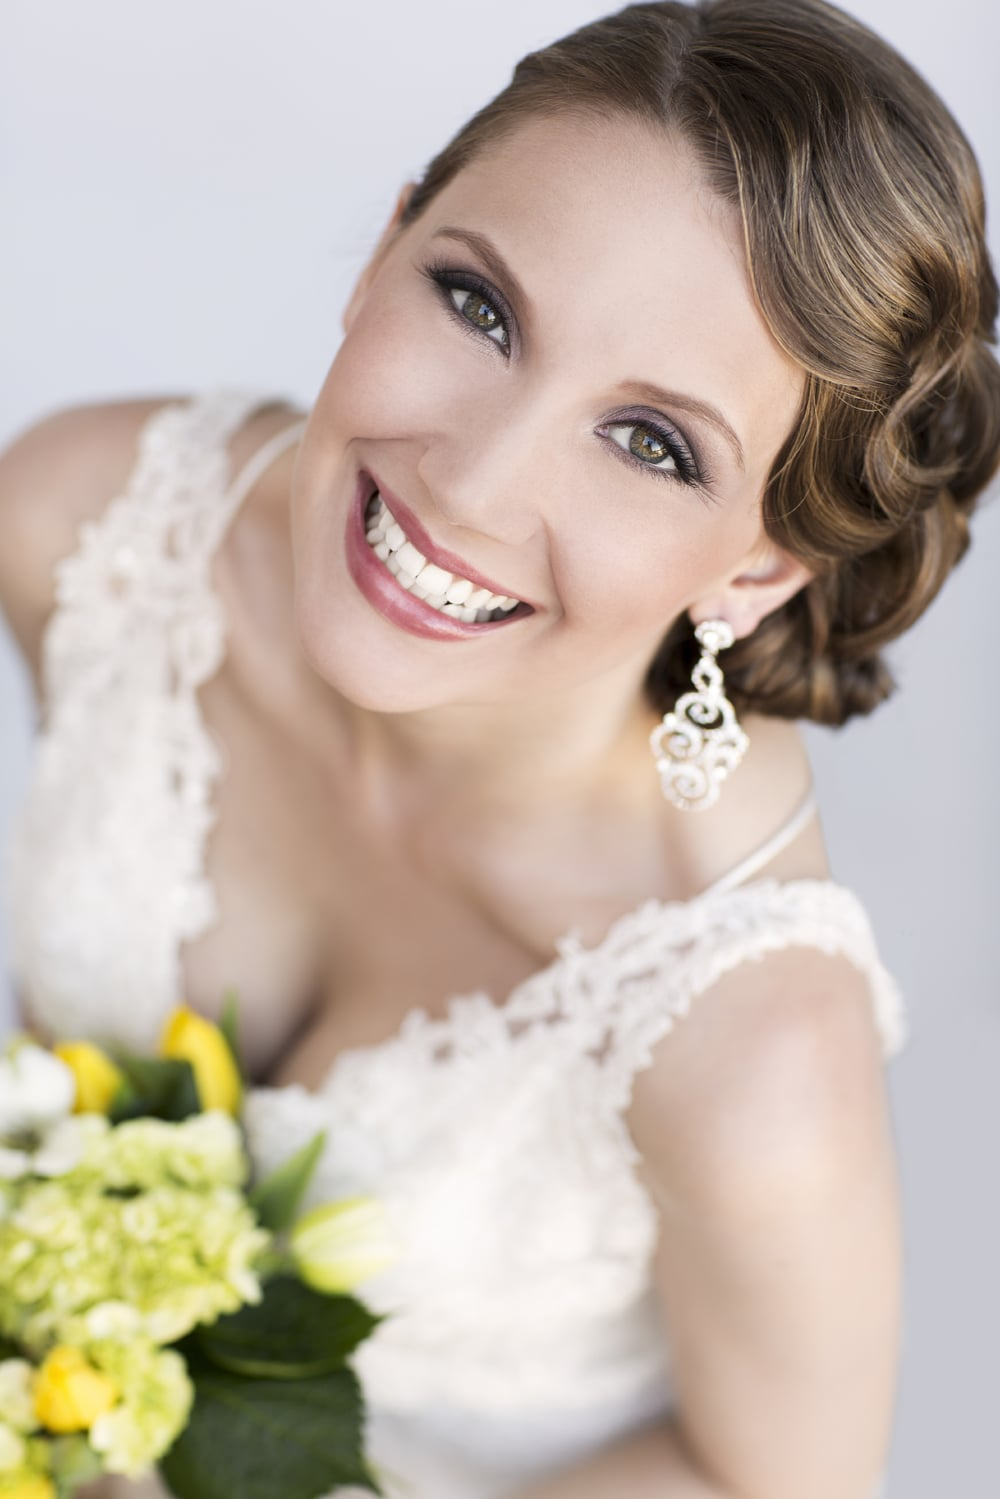 Our patients have ample time to prepare for their BIG DAY with Invisalign.